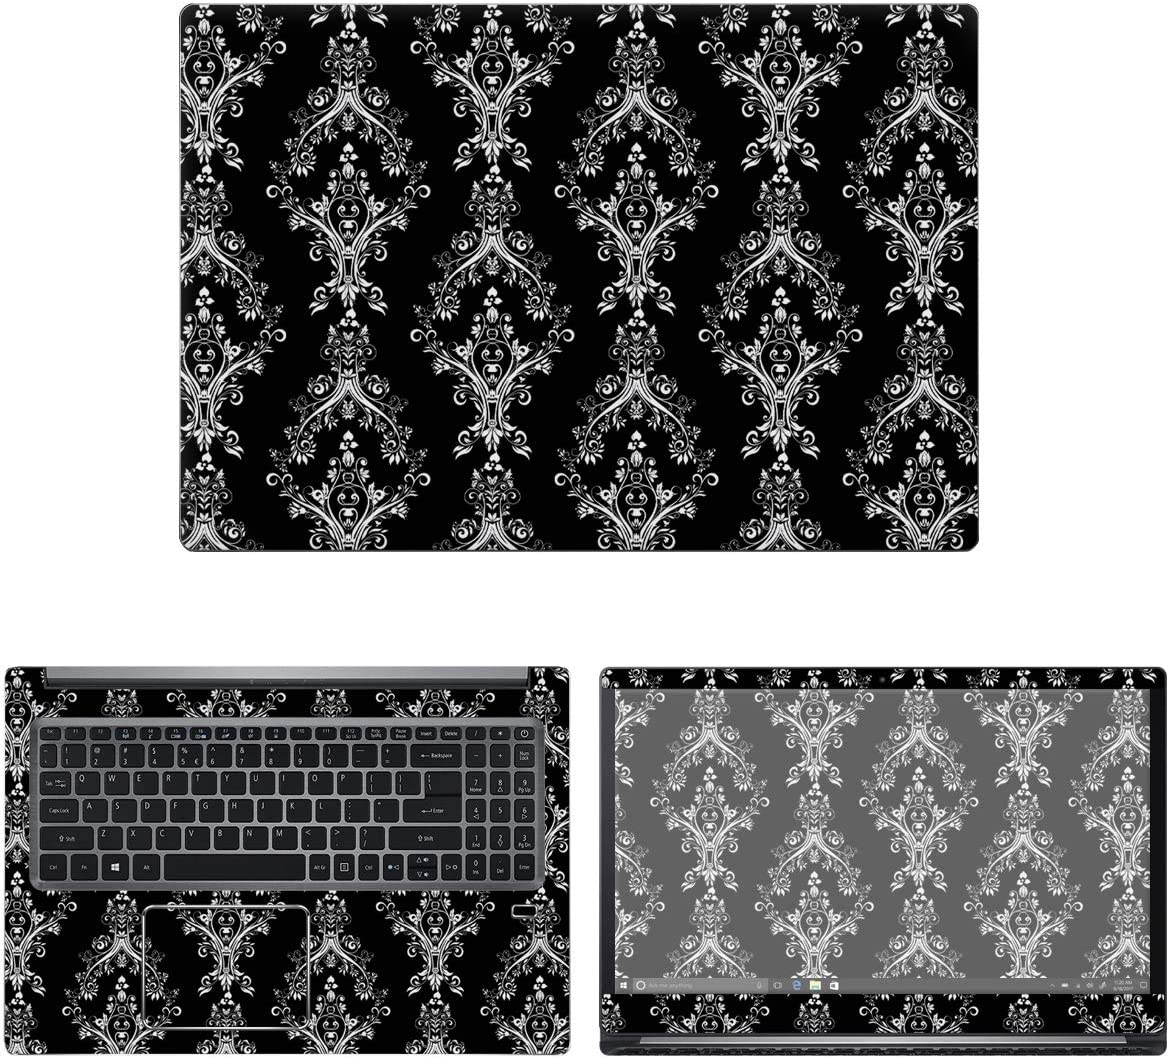 decalrus New product type - Protective Decal Skin Max 46% OFF Sticker for Swift 3 Acer SF315-